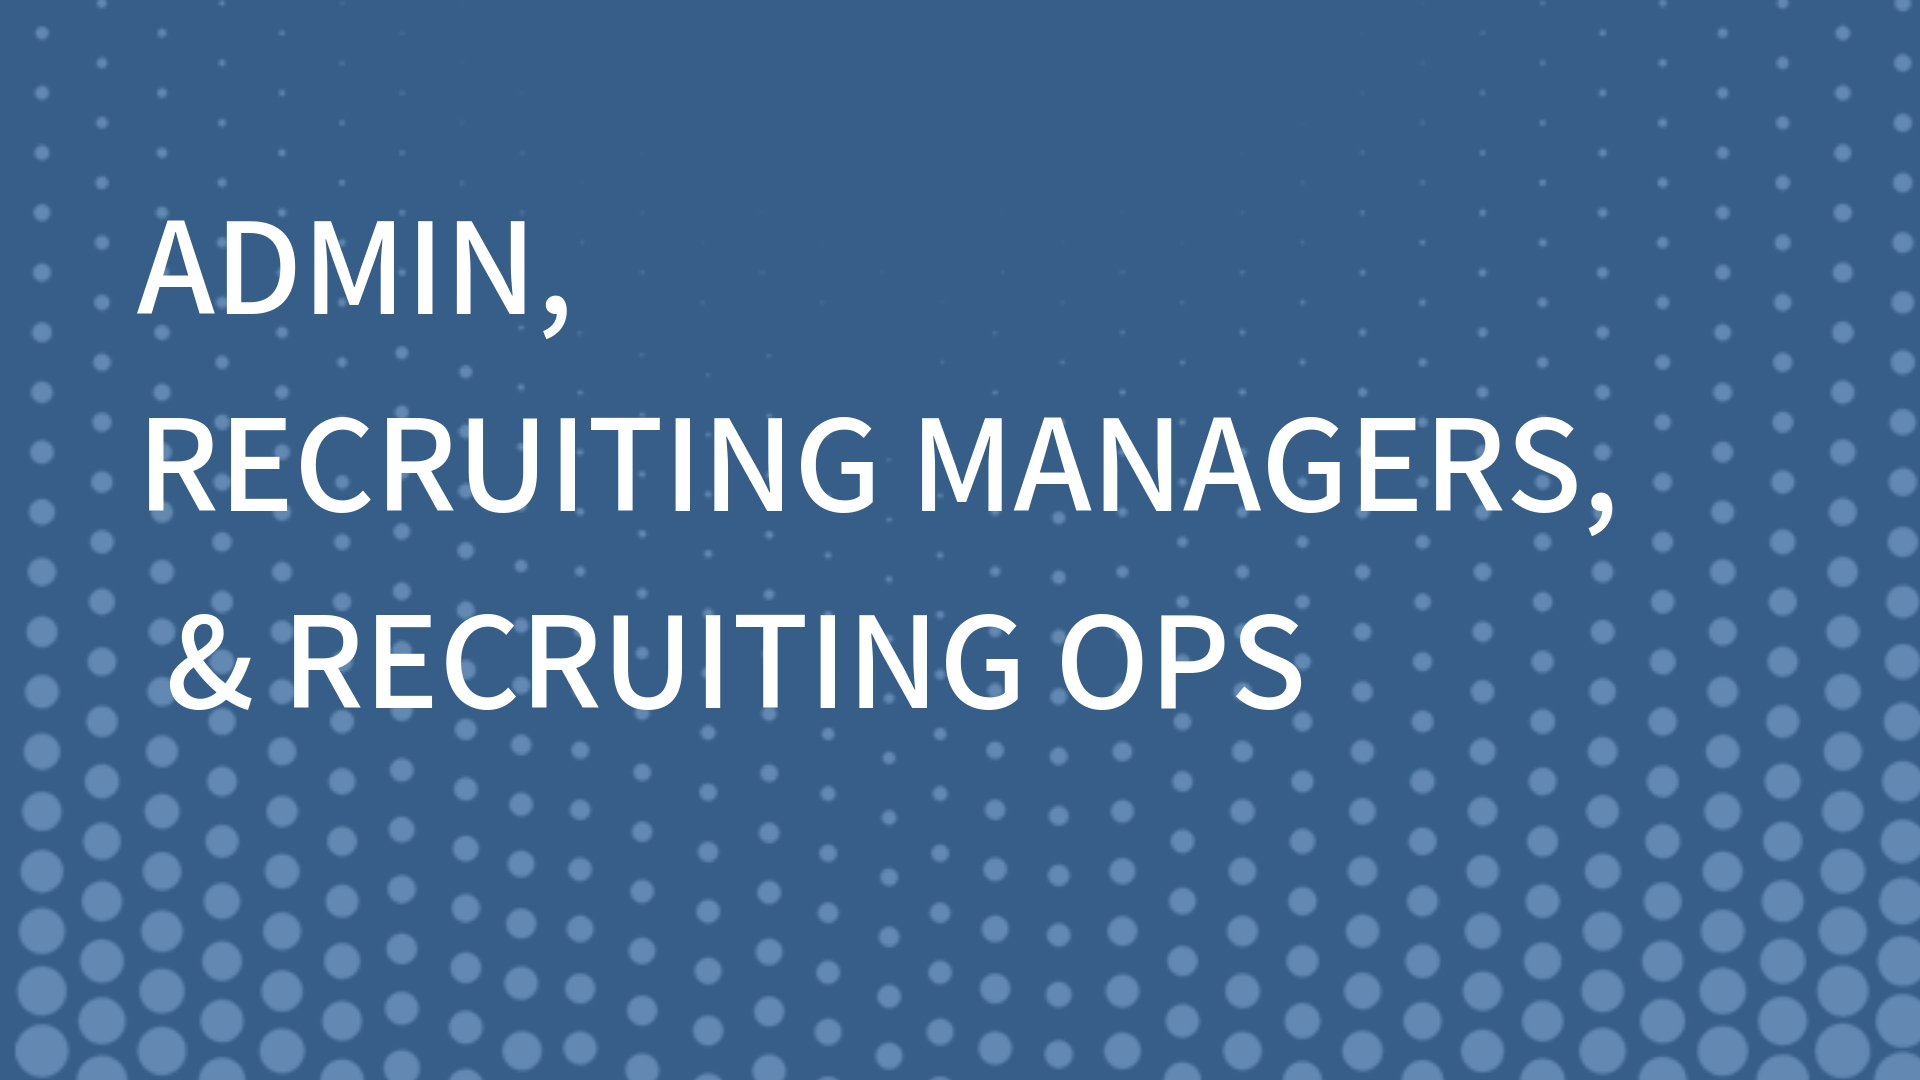 Admin, Recruiting Managers & Recruiting Ops